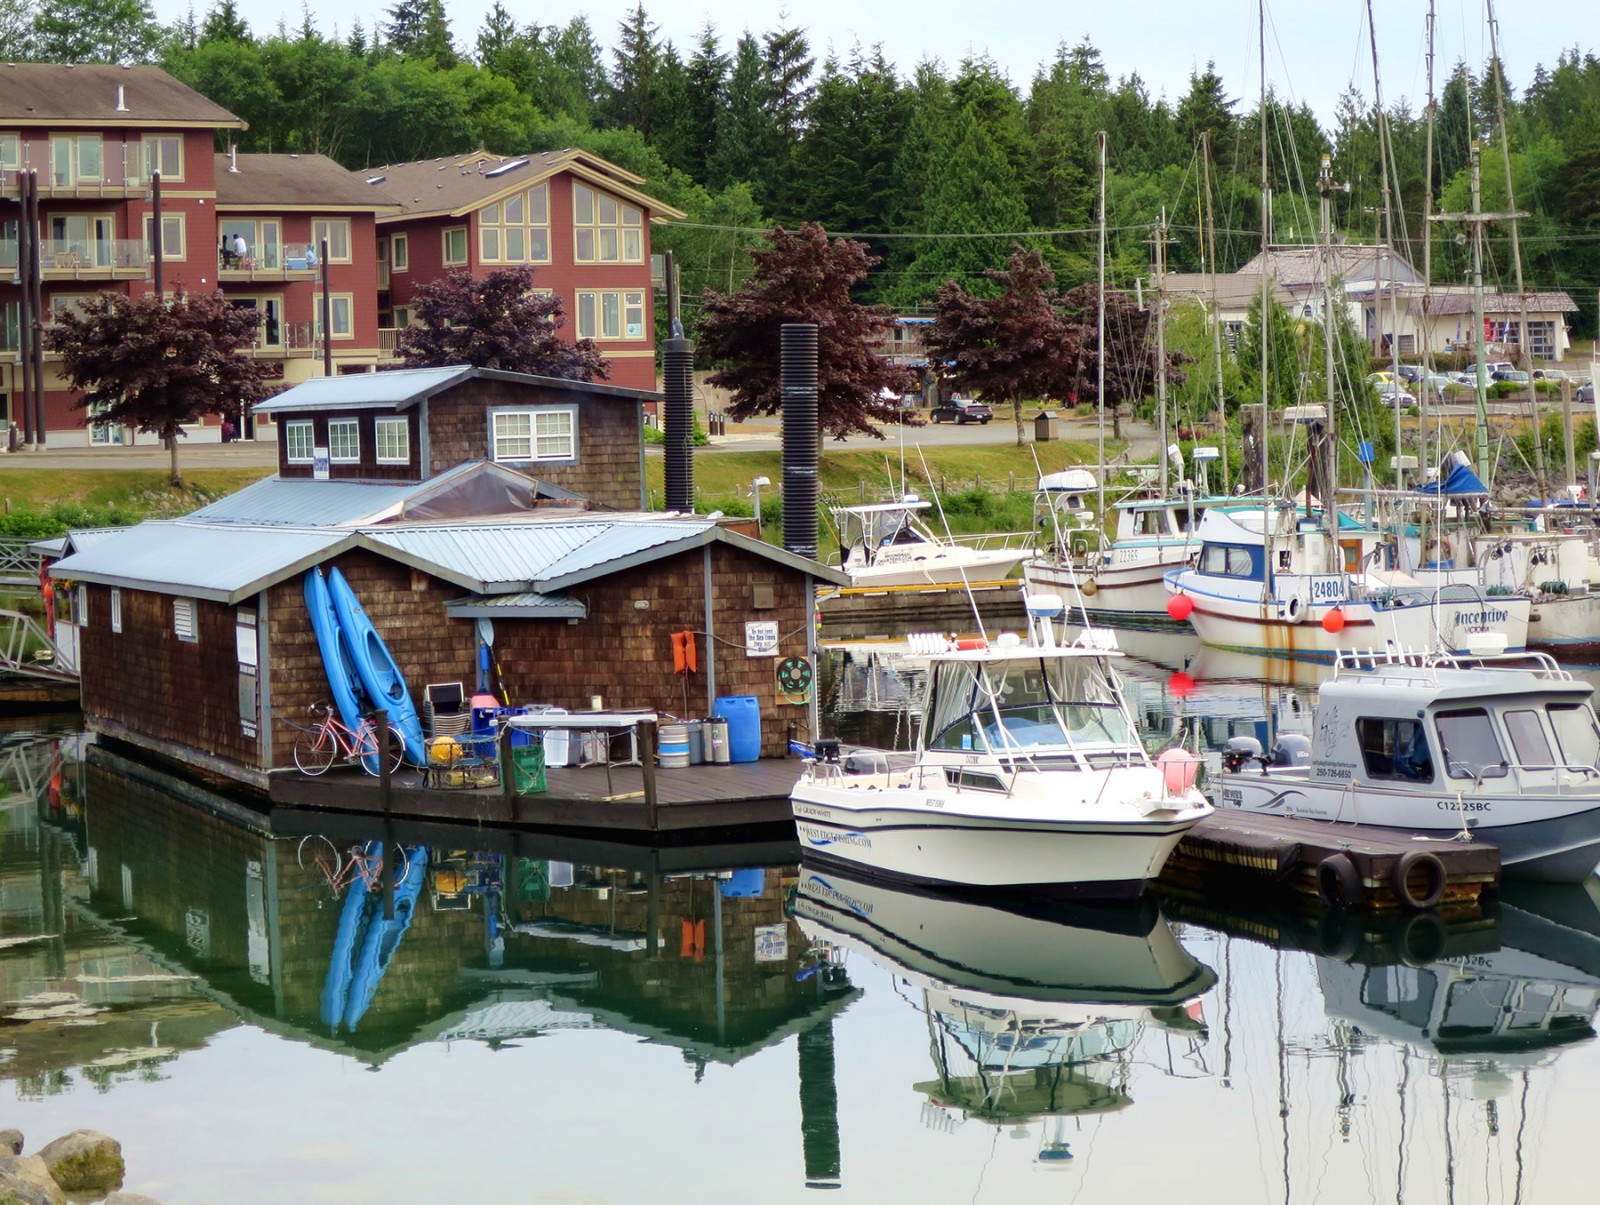 At the marina gangway, Floathouse Patio & Grill offers casual dining and a comfortable bar for swapping stories with friendly locals and fellow boaters. PHOTO/Peter Gardner